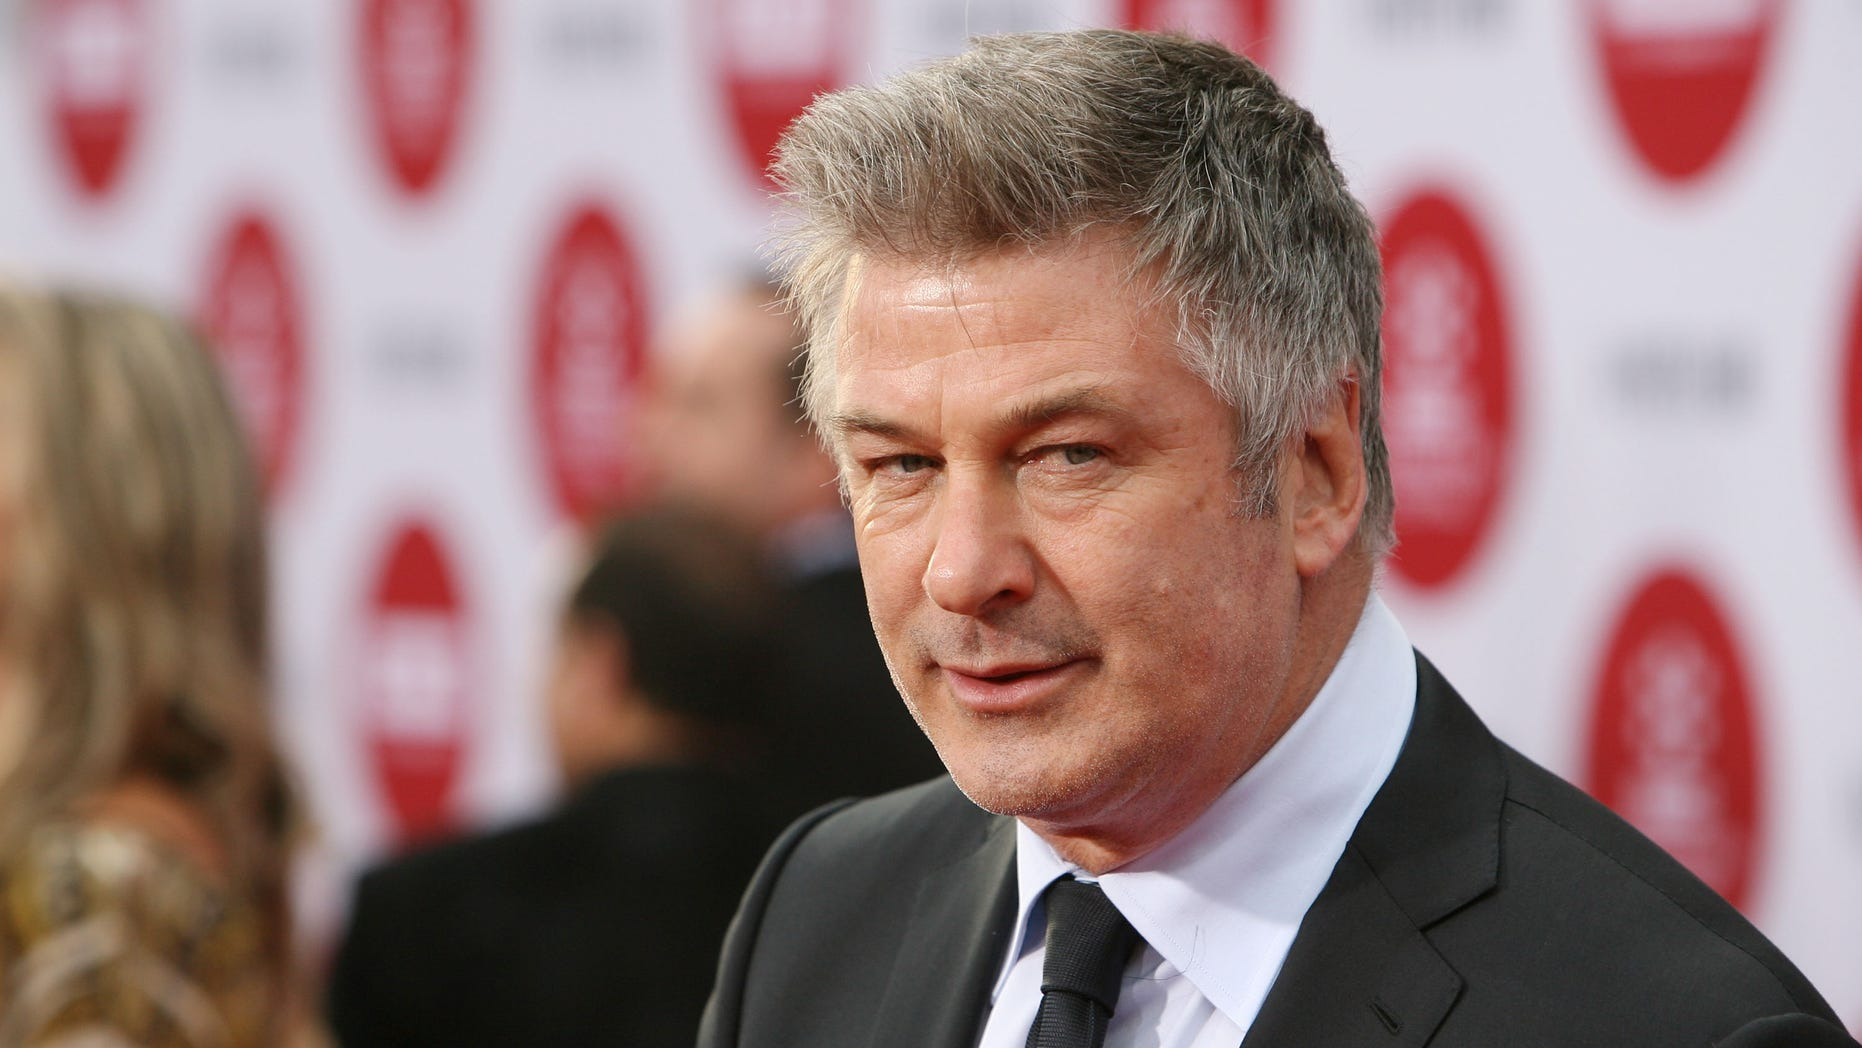 Alec Baldwin at TCL Chinese Theatre IMAX on April 10, 2014 in Hollywood, California.